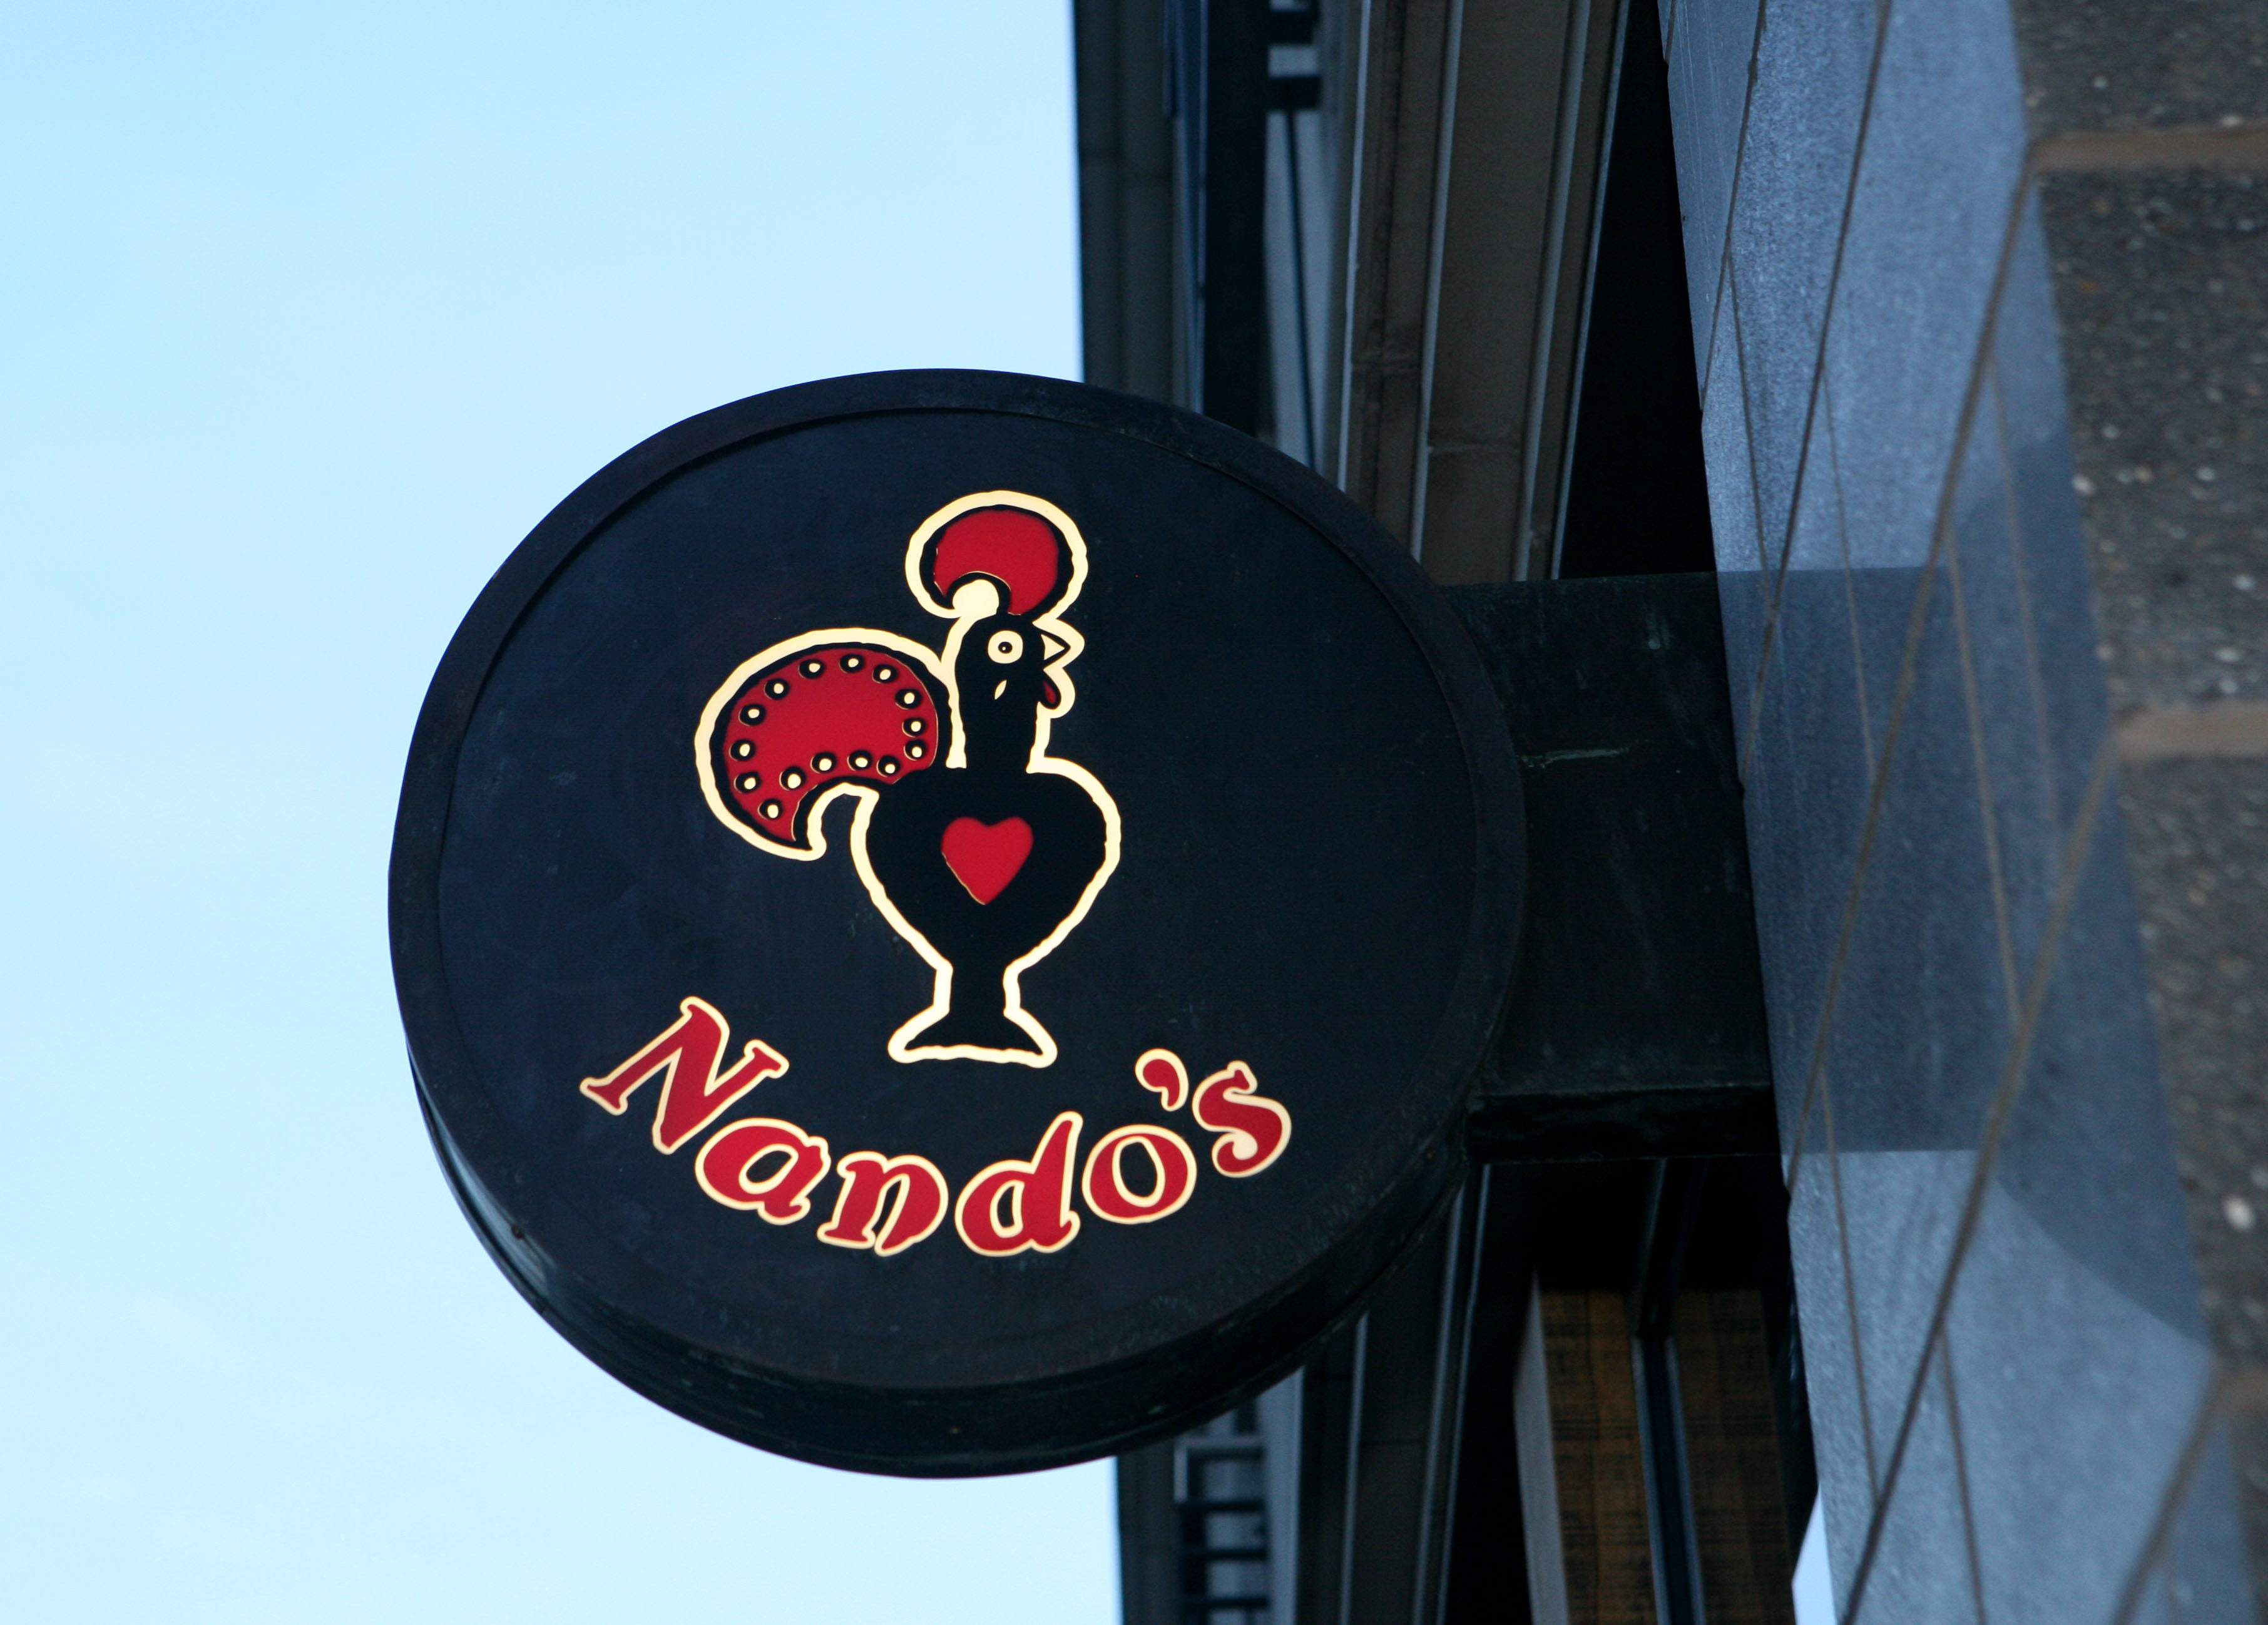 Nando's have a Christmas burger, and you can get it tomorrow